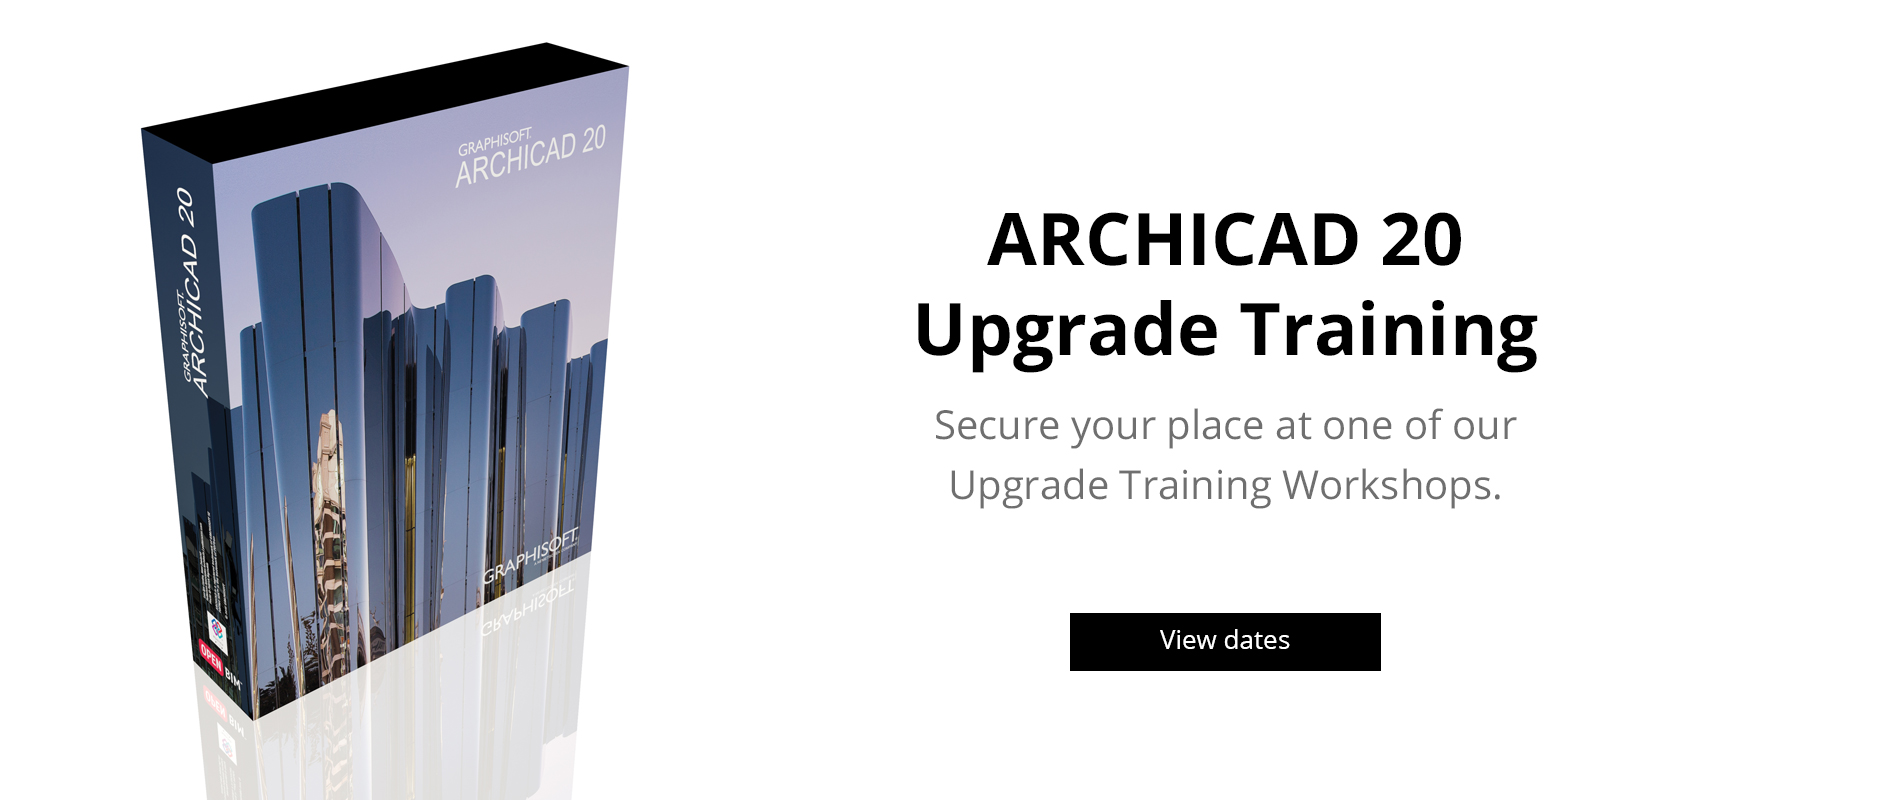 ARCHICAD 20 Now Shipping